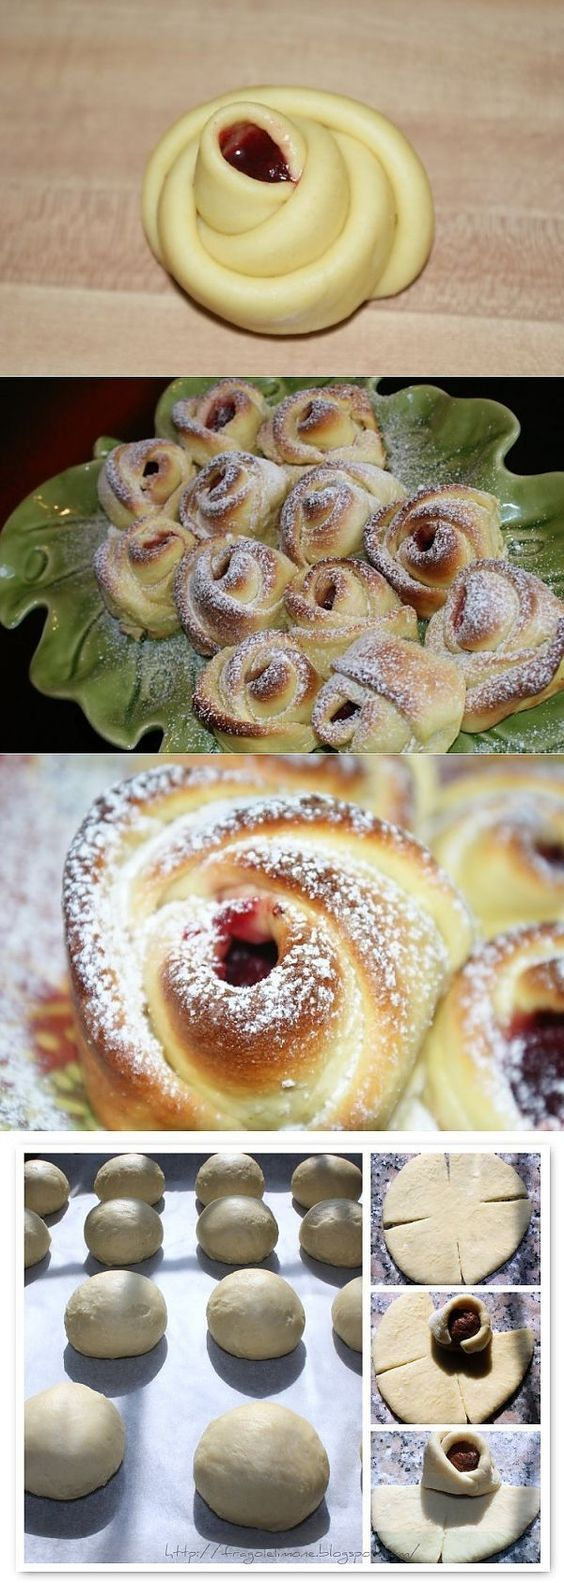 rose buns by whitney